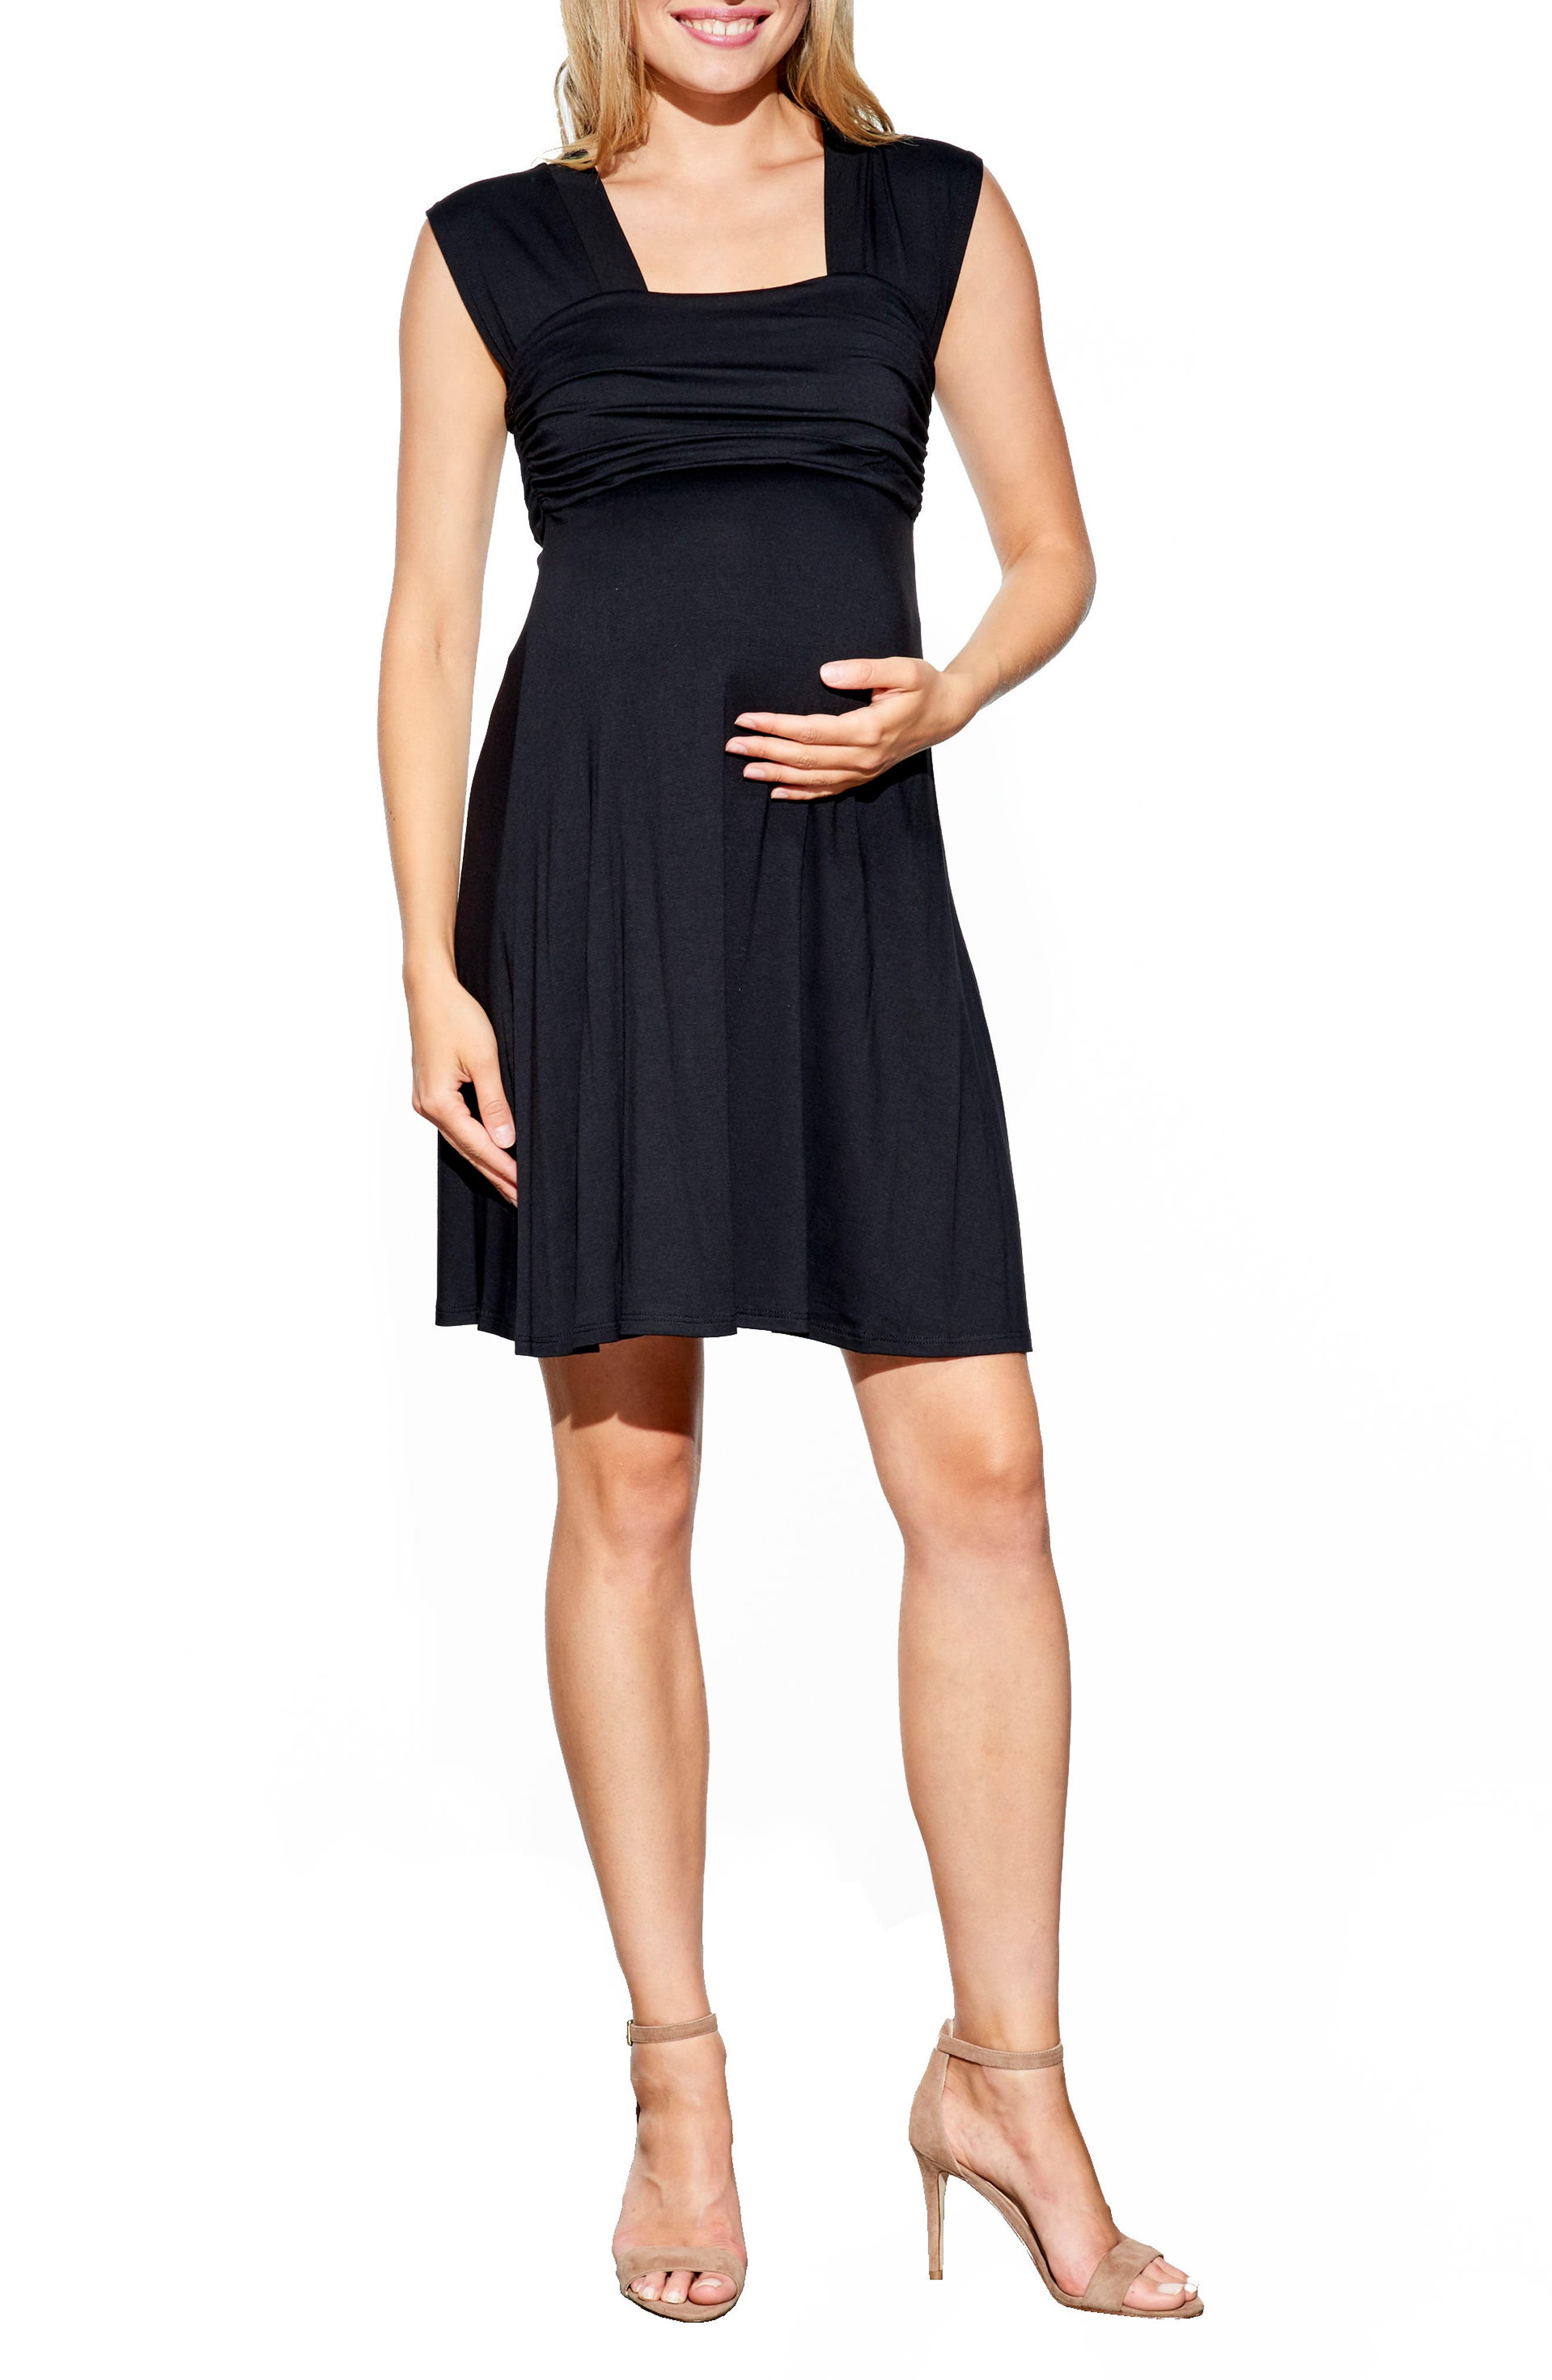 Alternate Image 1 Selected - Maternal America 'Mini Sweetheart' Dress